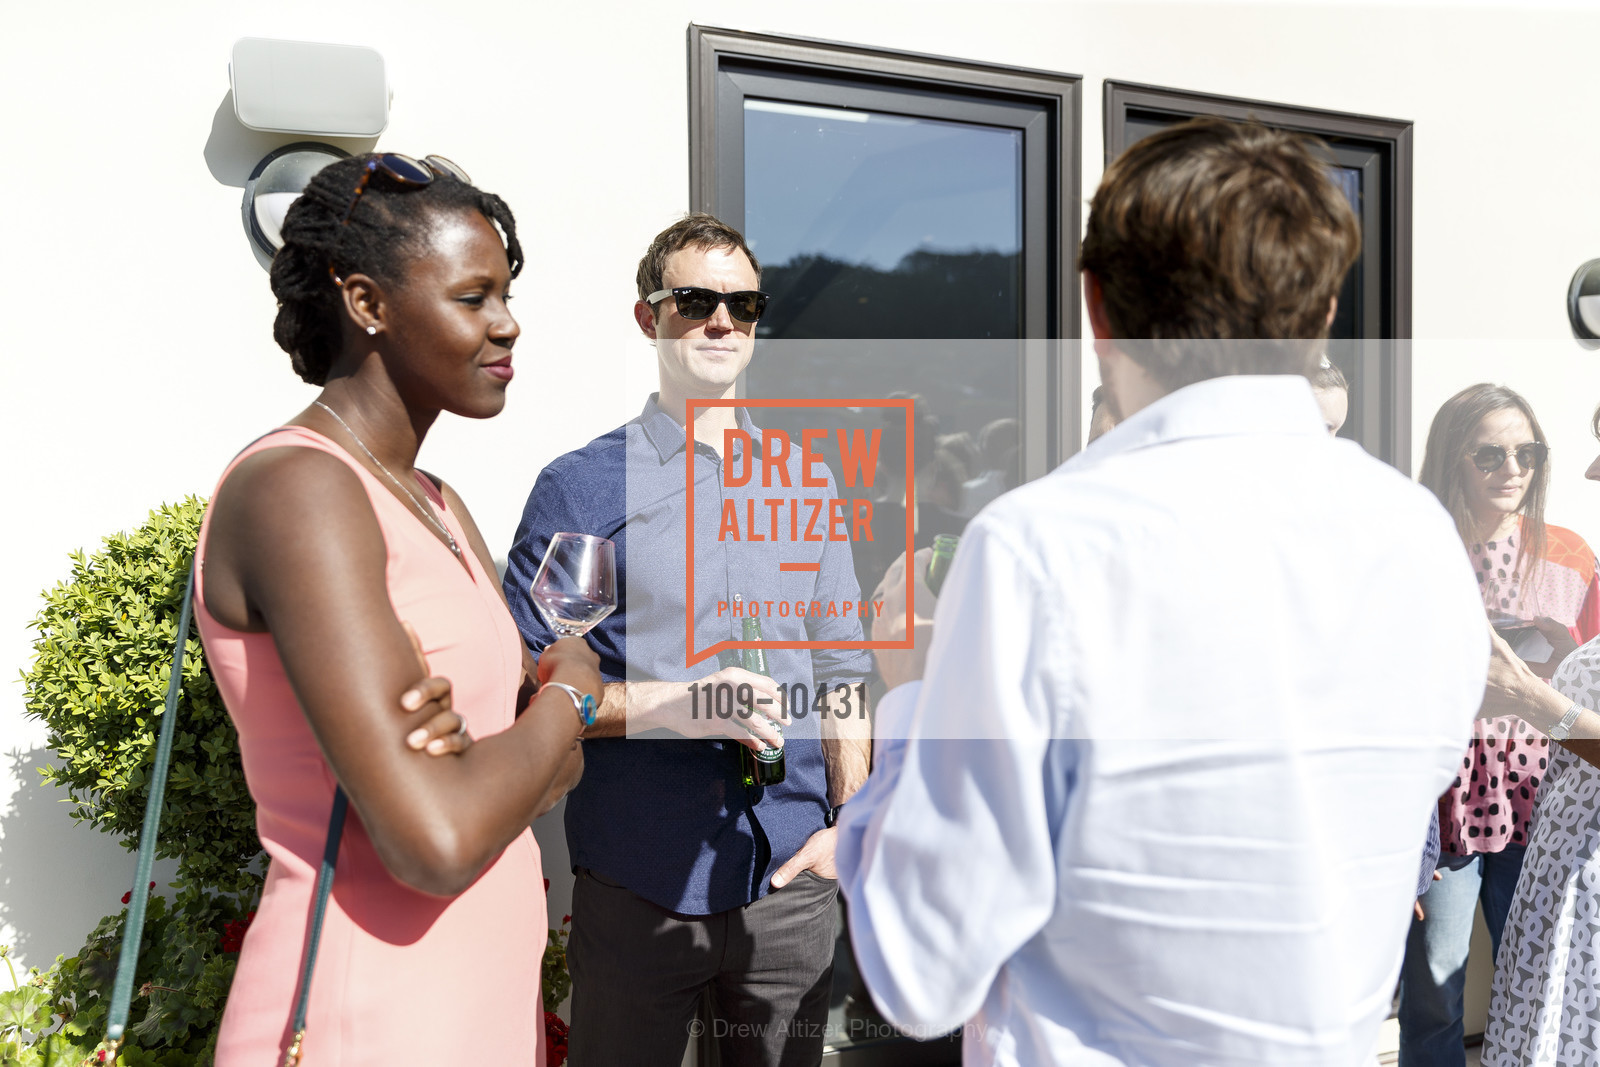 Shantal Williams, Payton Harrod, Liz and Dan's Engagement Party, Private Residence, April 14th, 2018,Drew Altizer, Drew Altizer Photography, full-service agency, private events, San Francisco photographer, photographer california